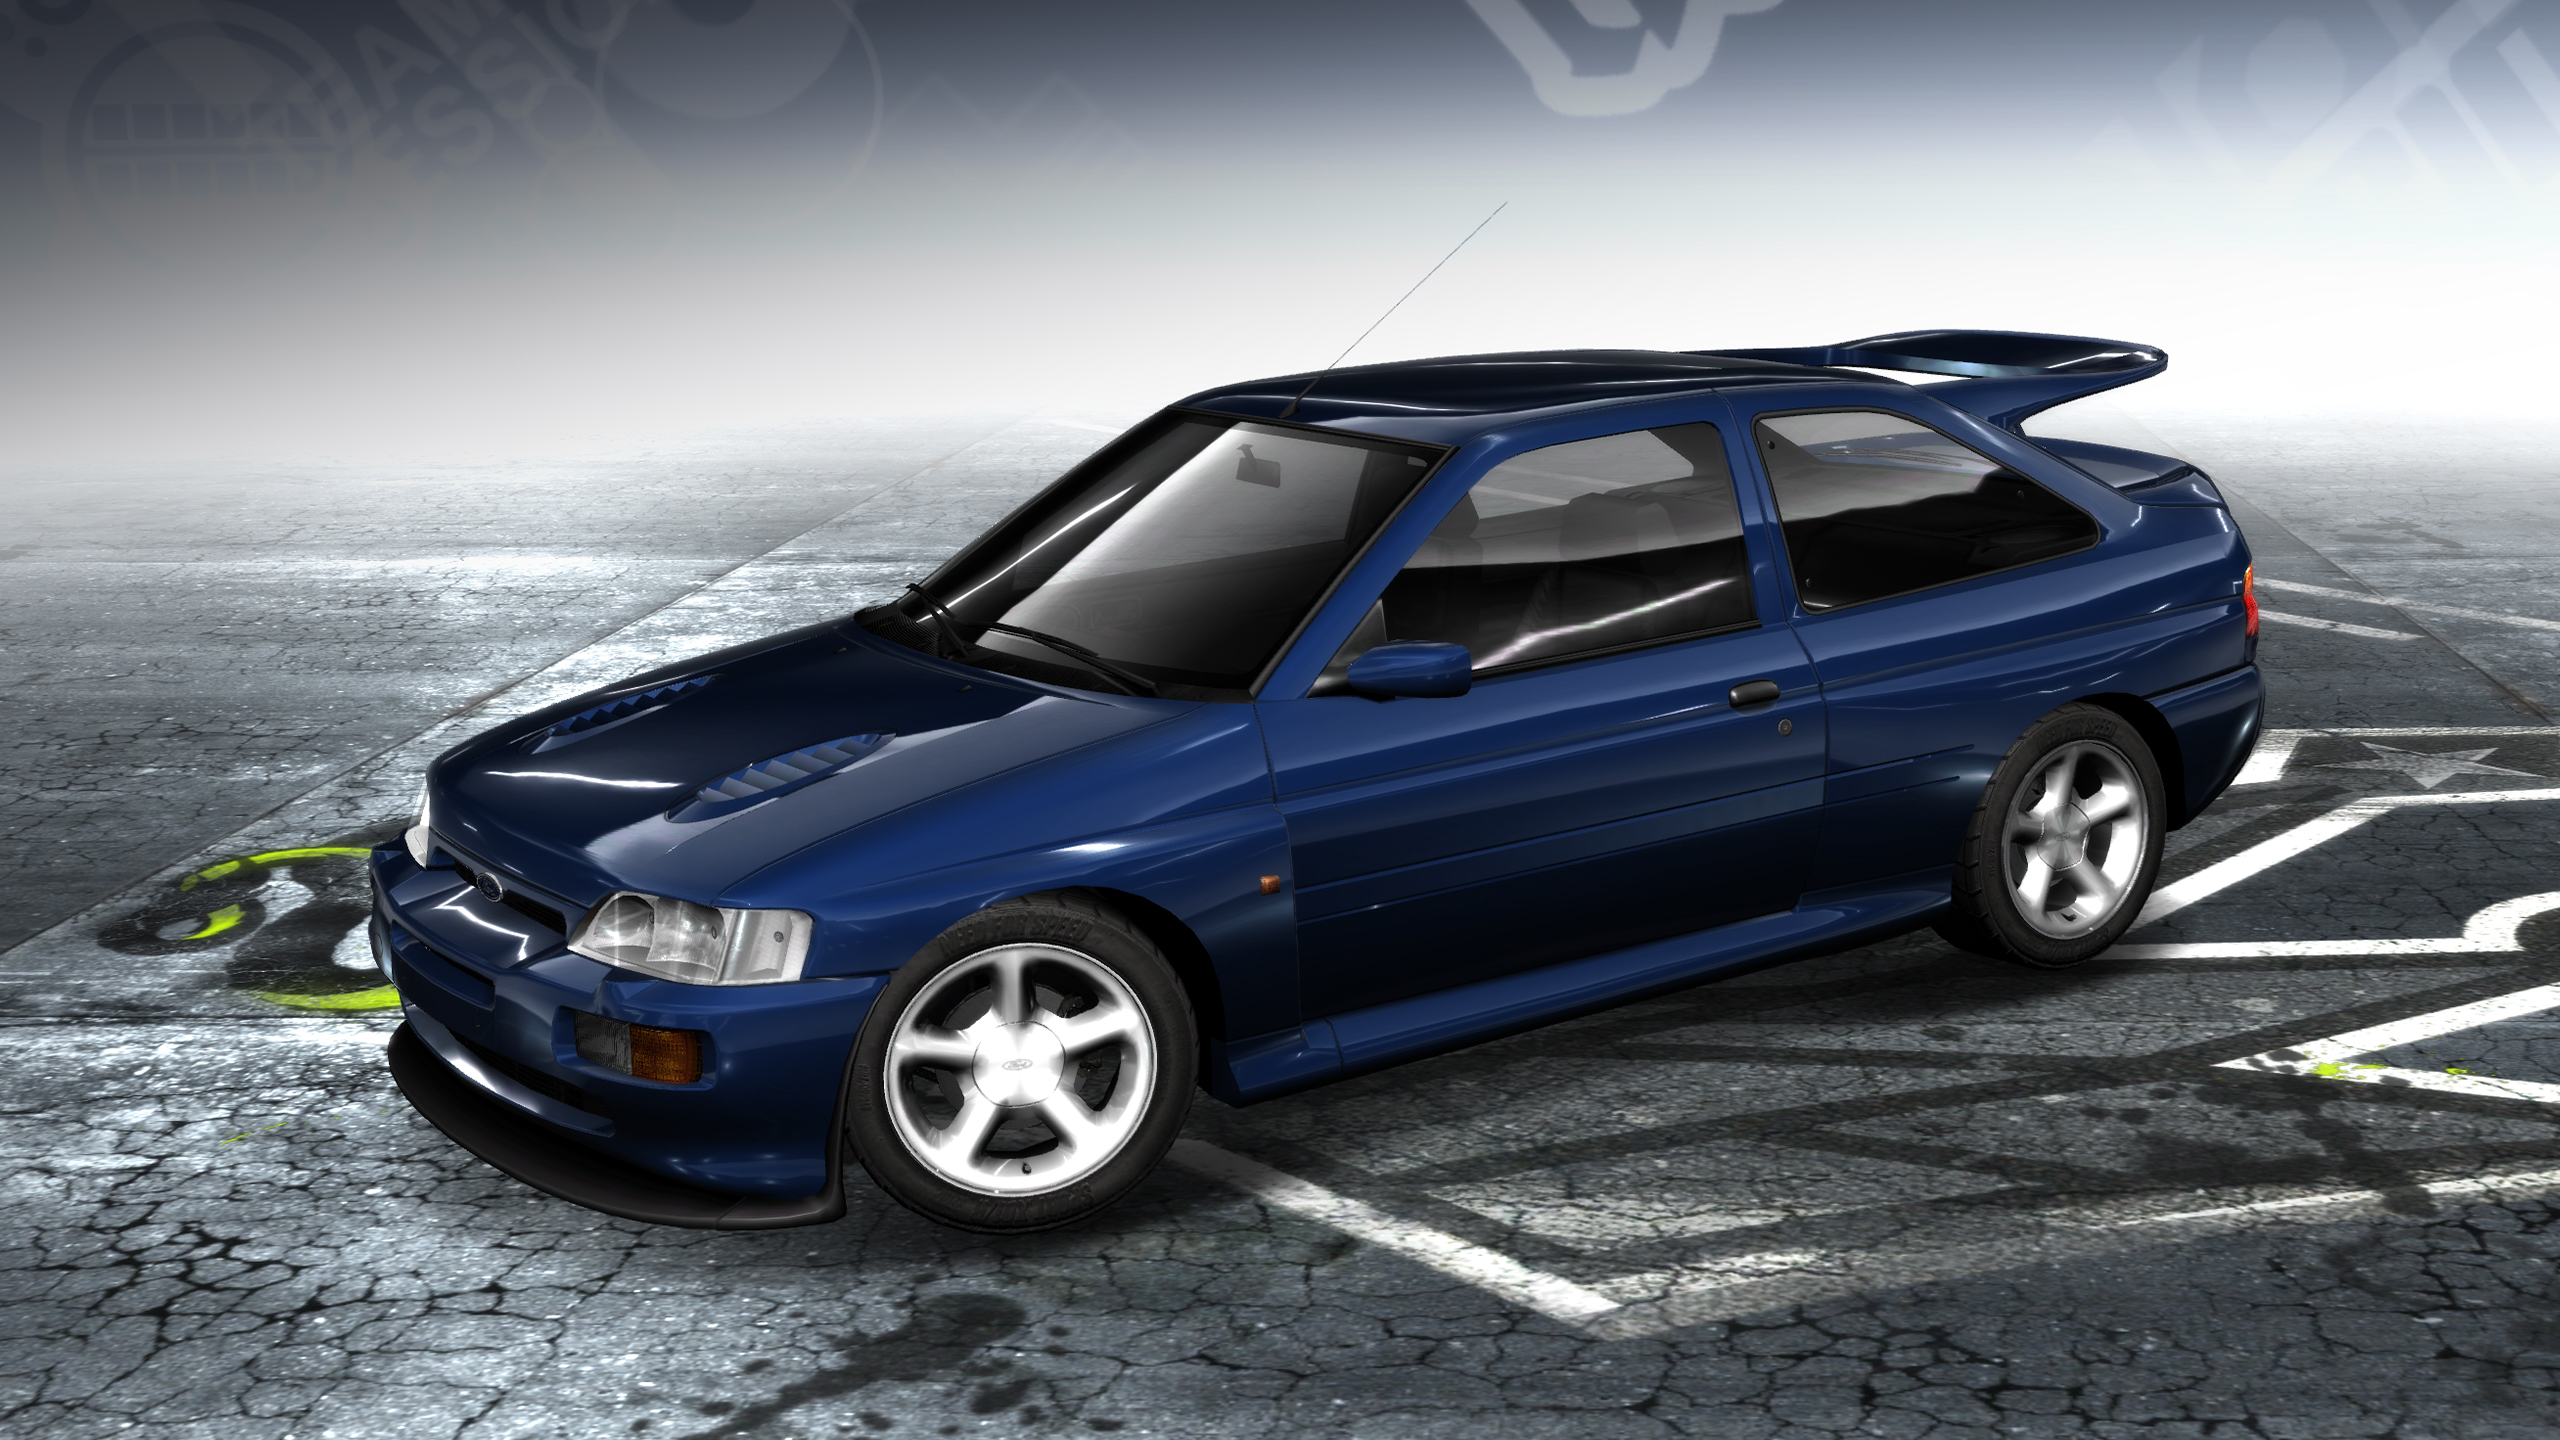 ford escort rs cosworth need for speed wiki fandom powered by wikia. Black Bedroom Furniture Sets. Home Design Ideas